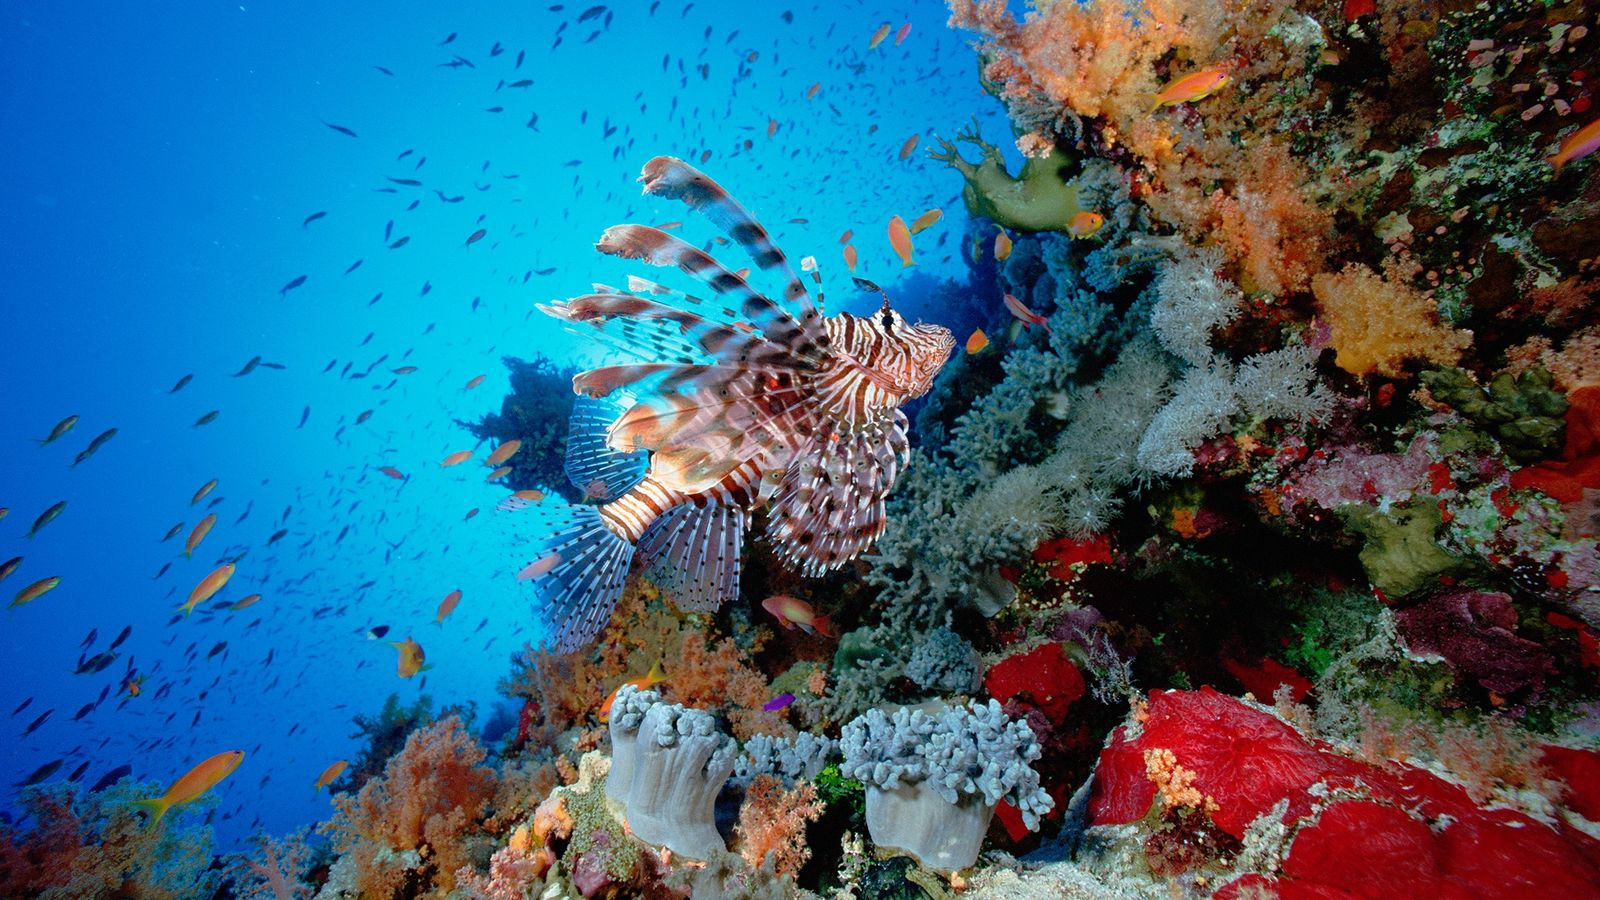 Lionfish swim over a reef in the Red Sea. Lionfish are venemous and are considered invasive ...